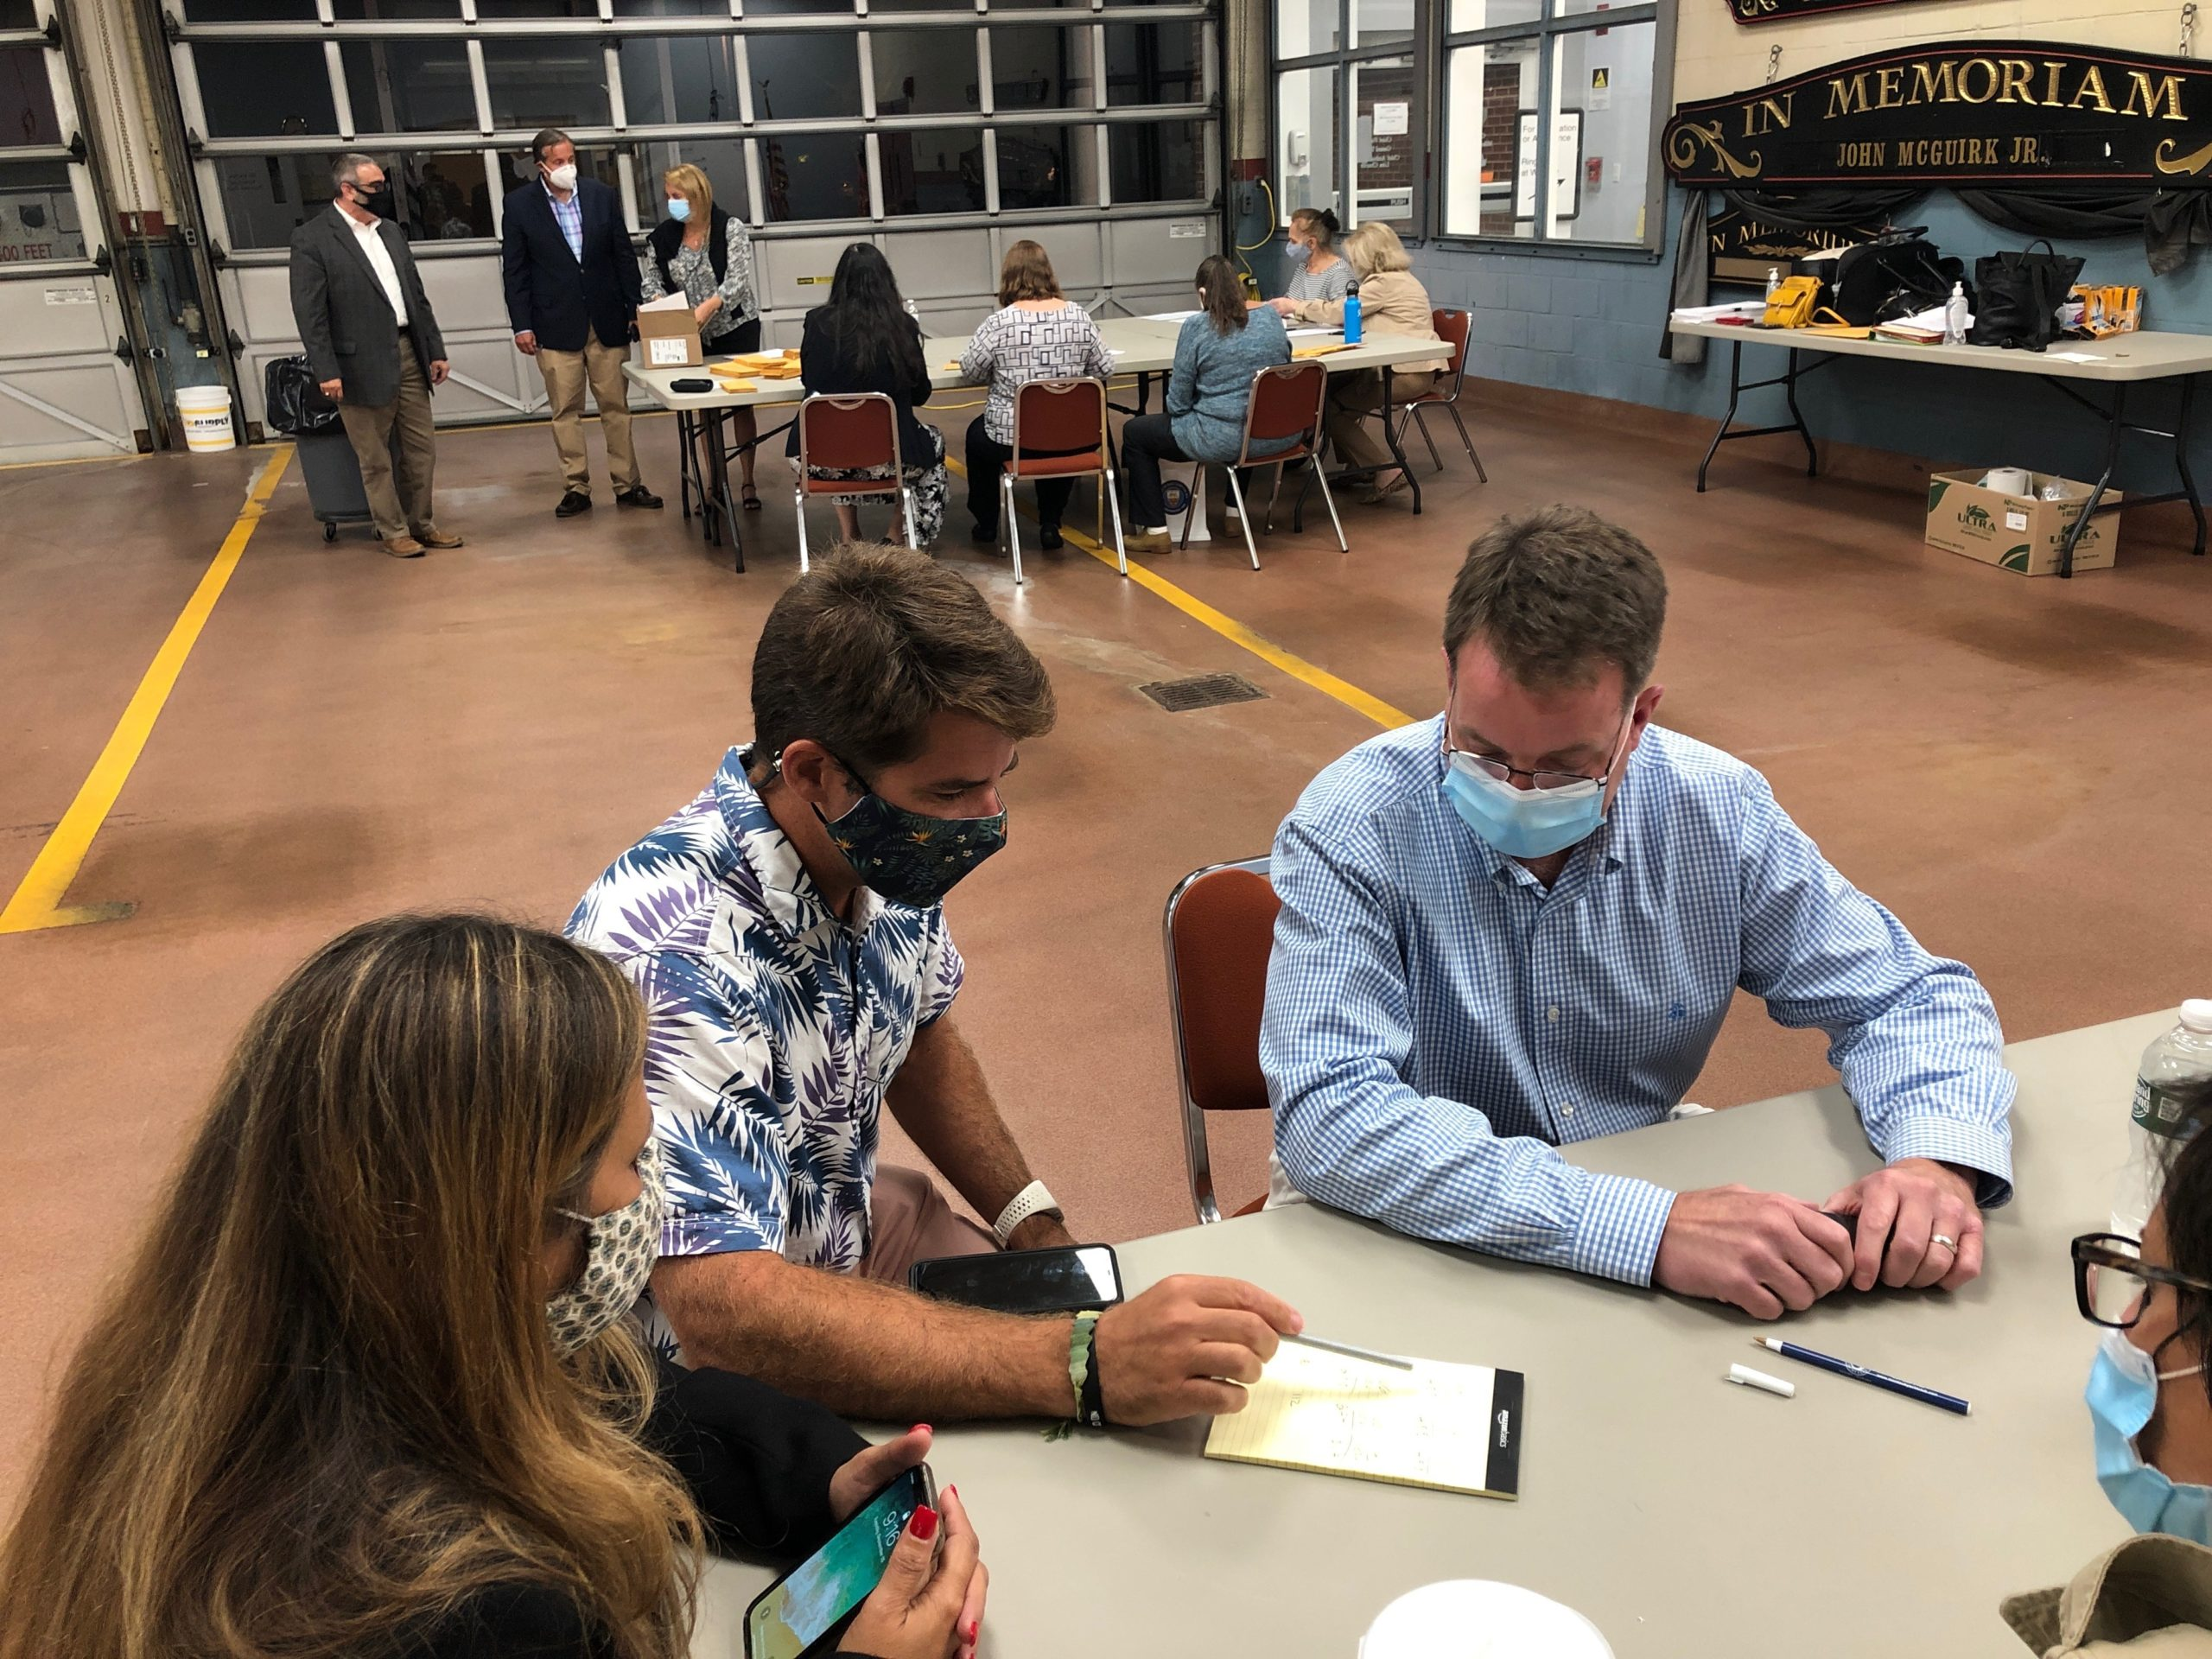 Jerry Larsen, right, and his running mates Chris Minardi and Sandra Melendez won a sweeping victory in the East Hampton Village Board elections on Tuesday night.